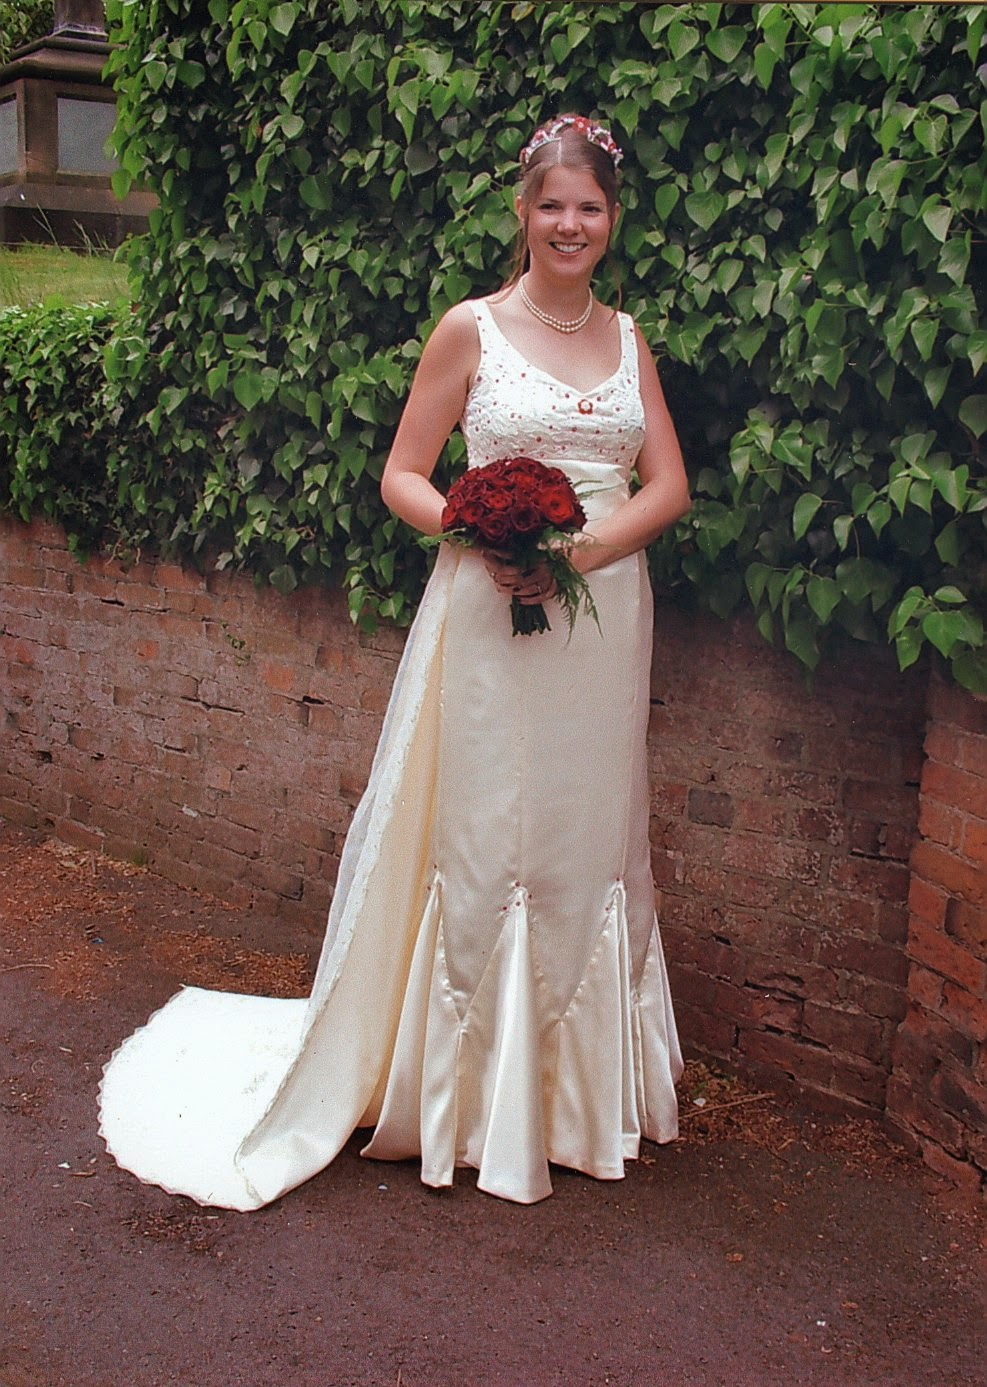 A 'do it myself' wedding dress